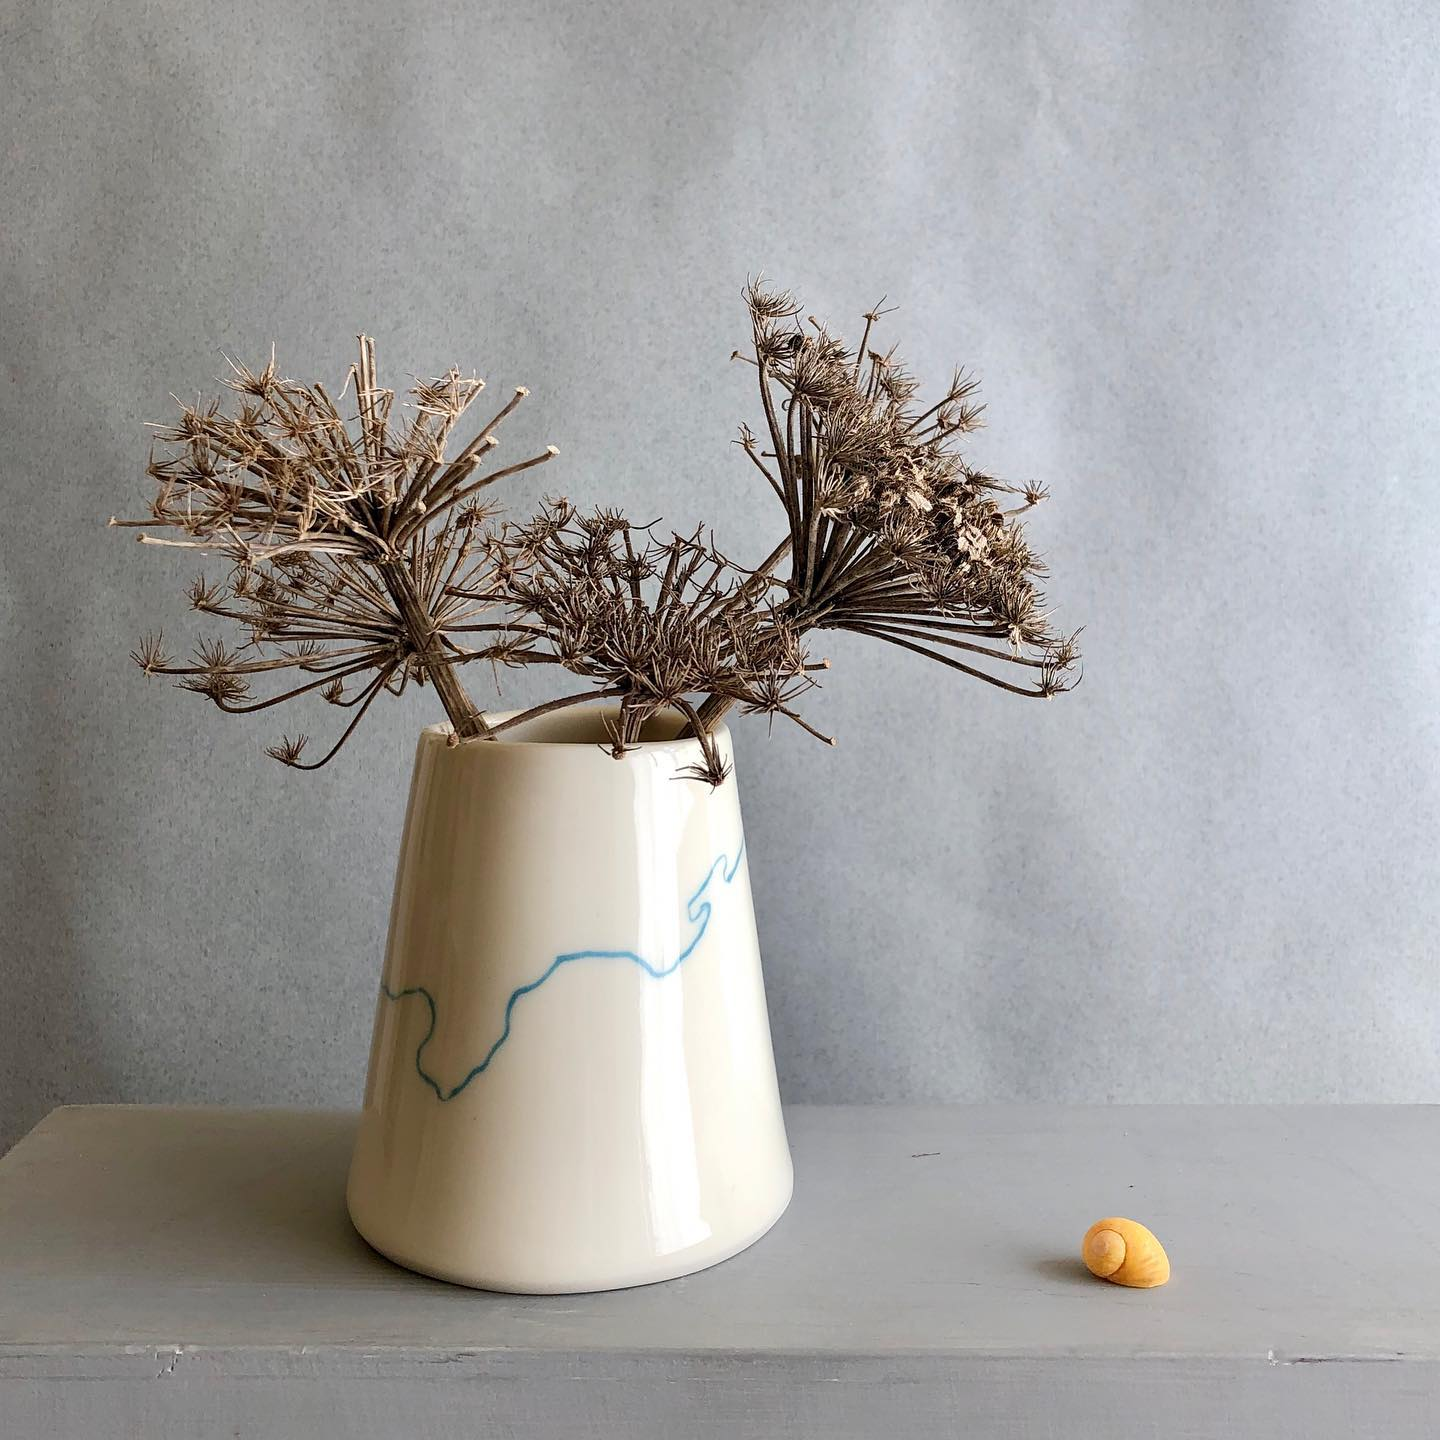 Bud vase and shell Rebecca Roberts Ceram